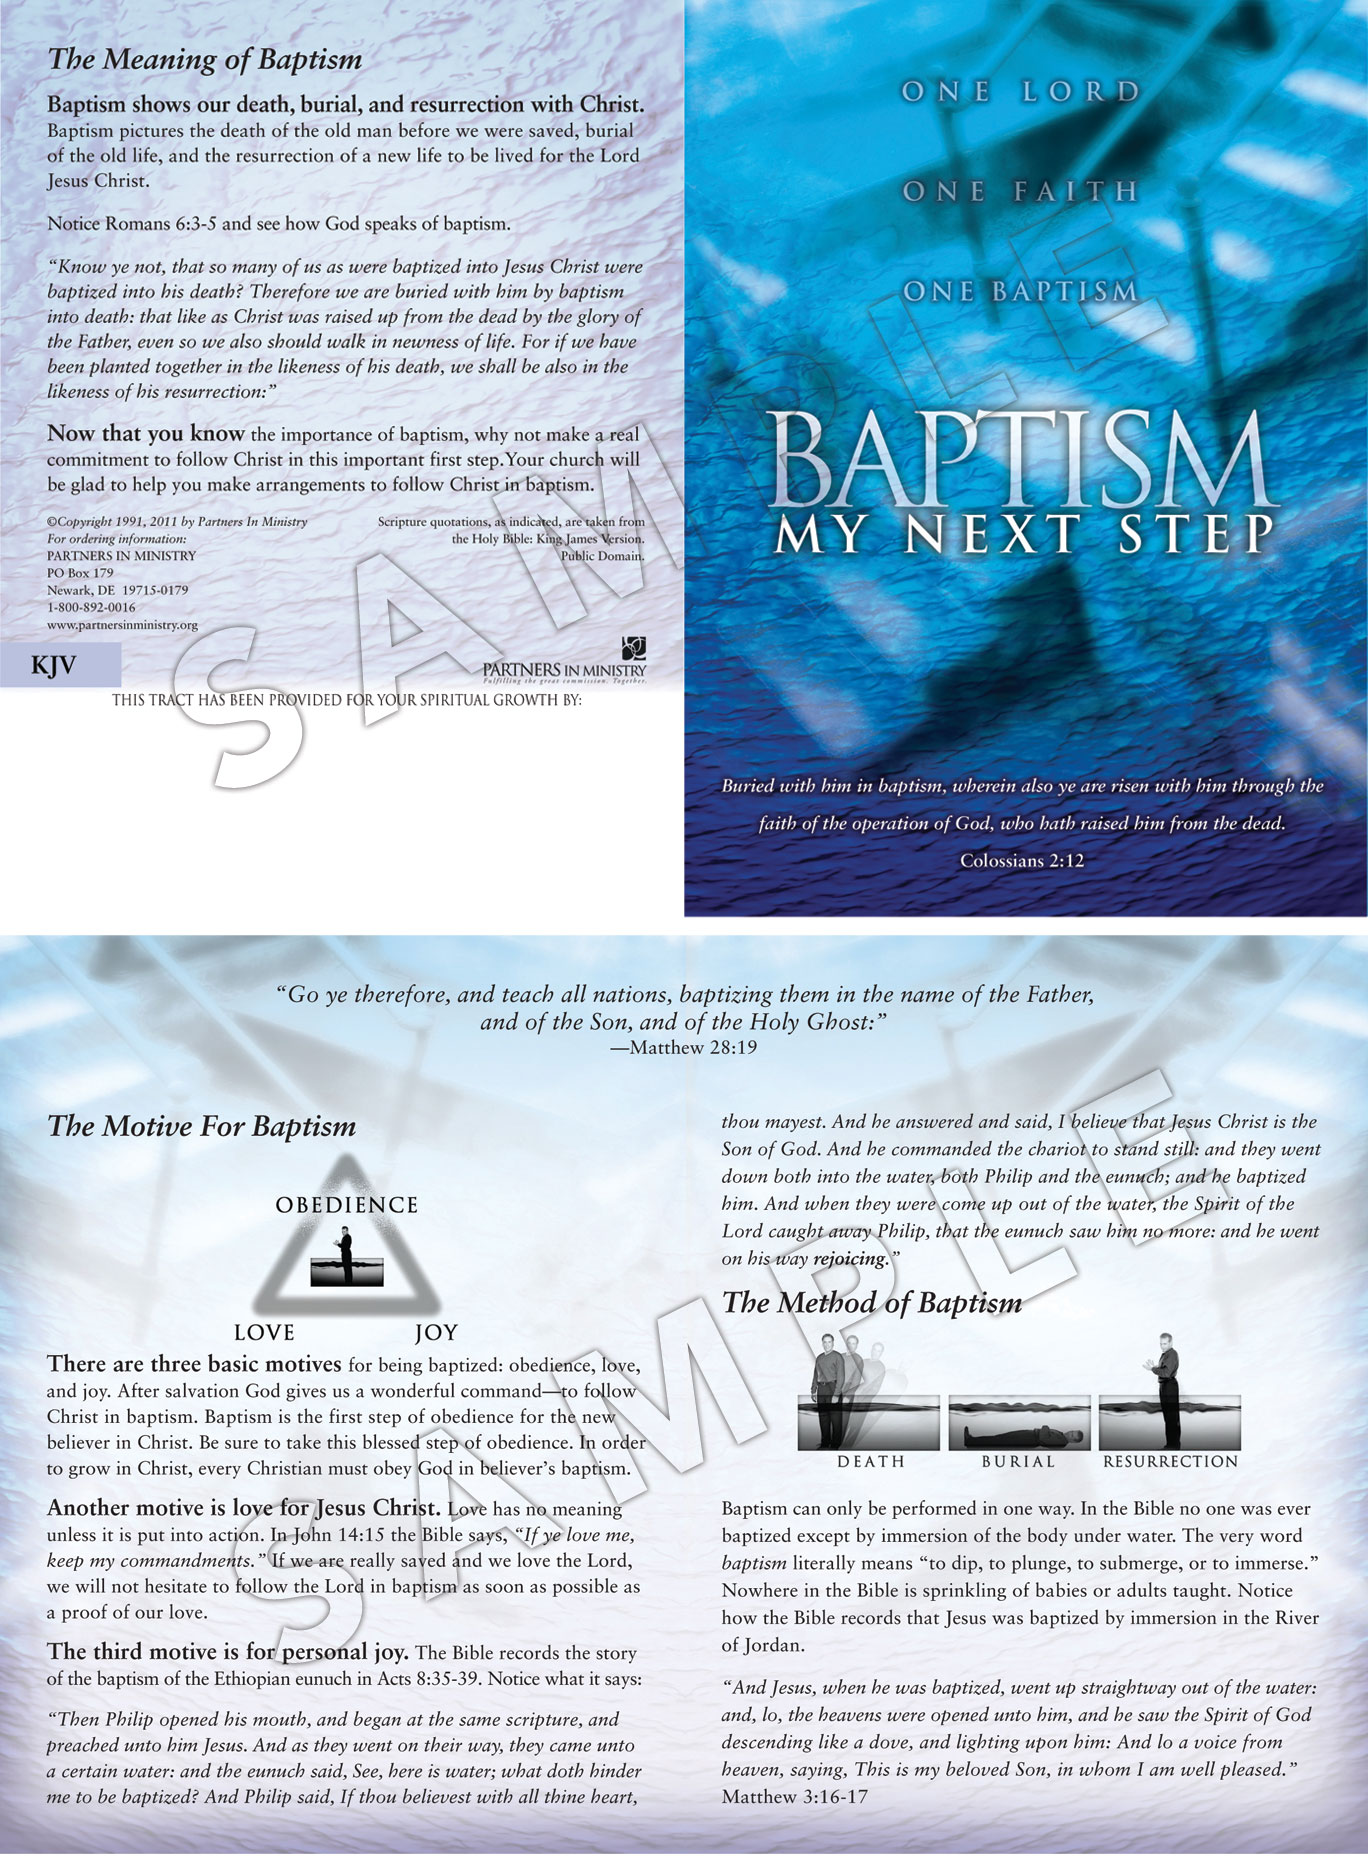 a study of baptism and discipleship At celebration church, we believe that all christians should observe the ordinance of baptism following in the footsteps of our lord and savior, jesus christ.